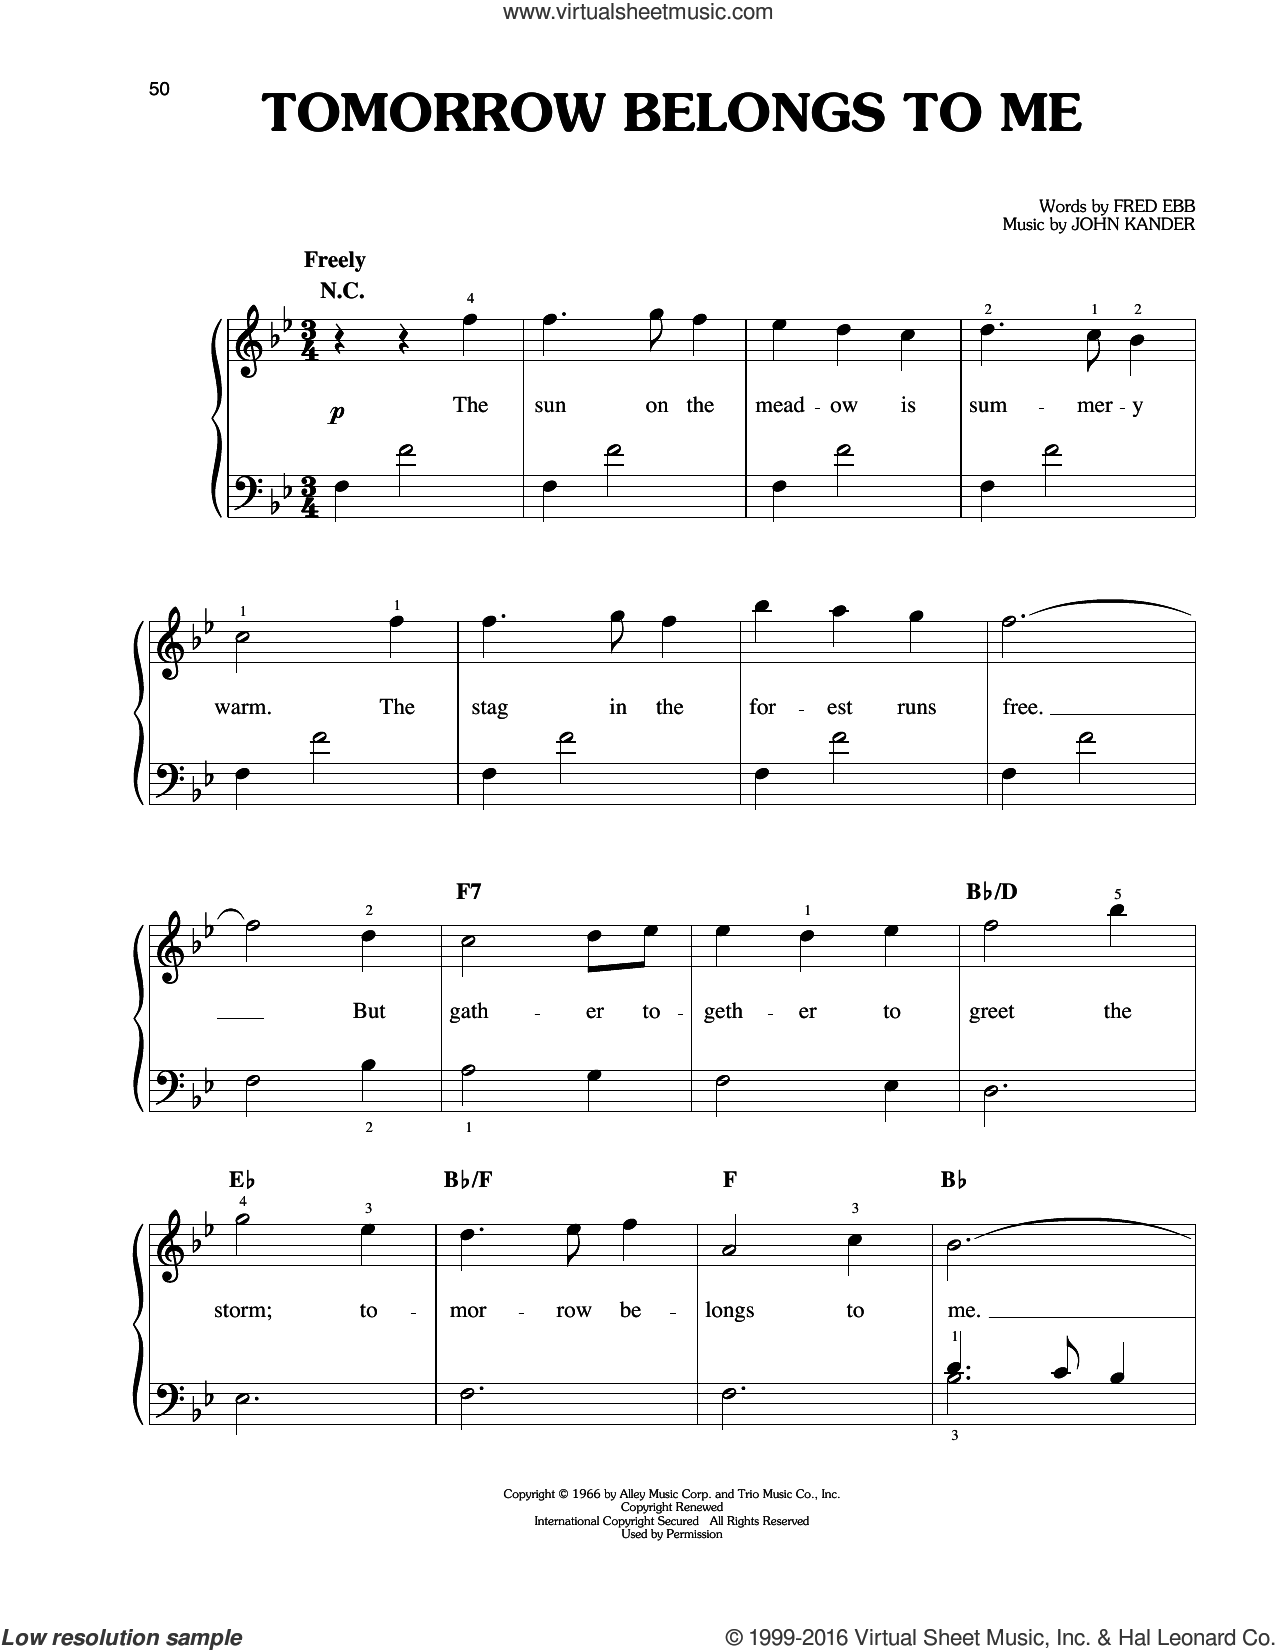 Kander - Tomorrow Belongs To Me sheet music for piano solo [PDF]